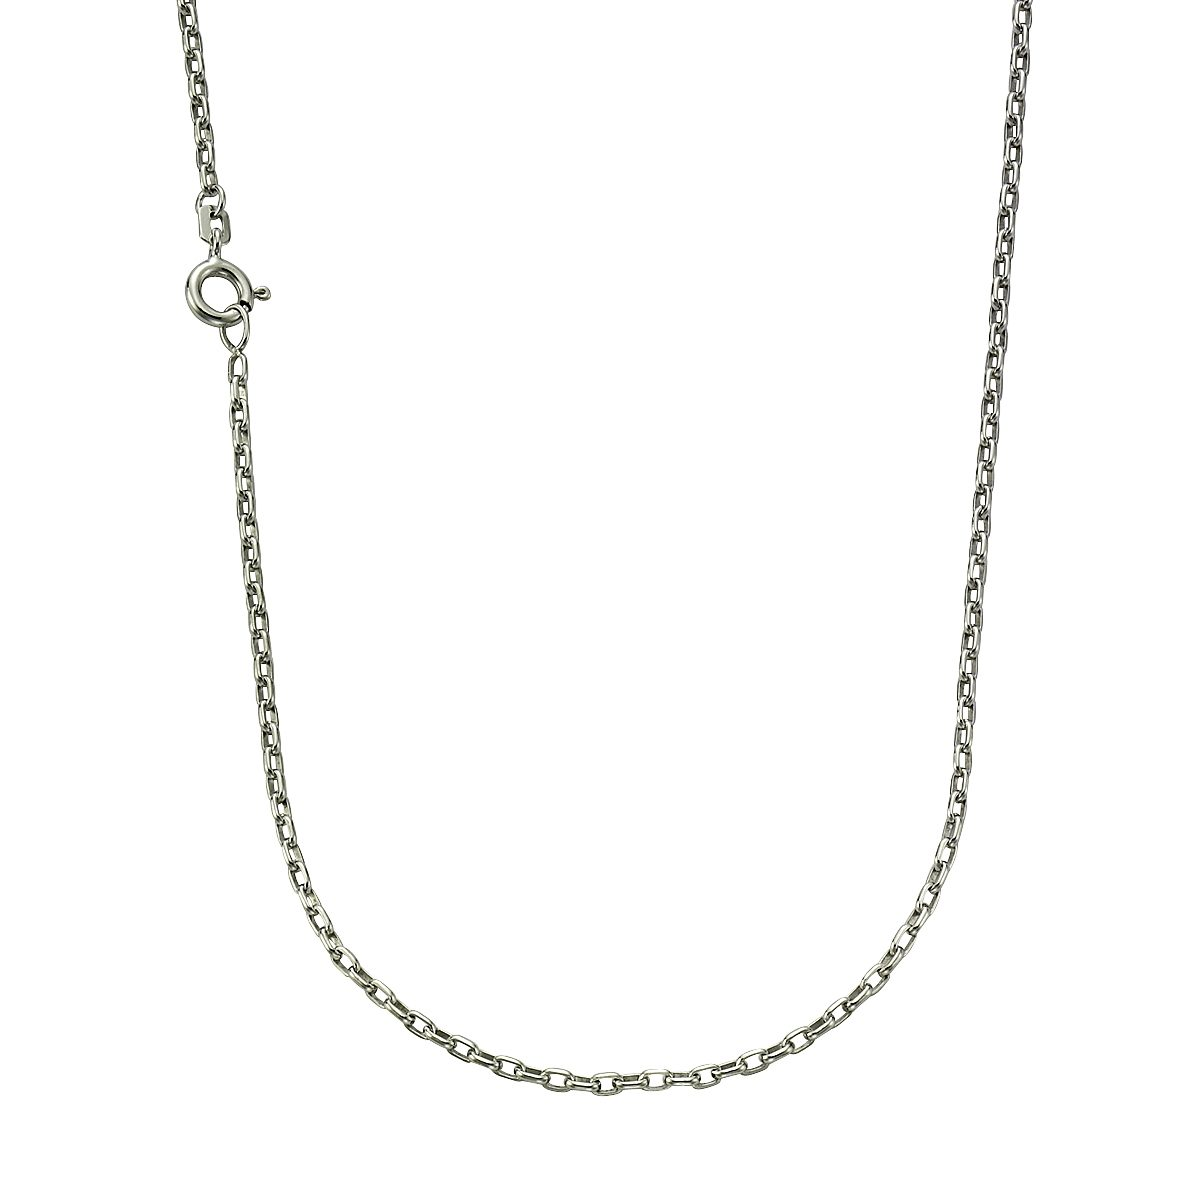 Zeeme Collier »925/- Sterling Silber Ankerkette 45cm«